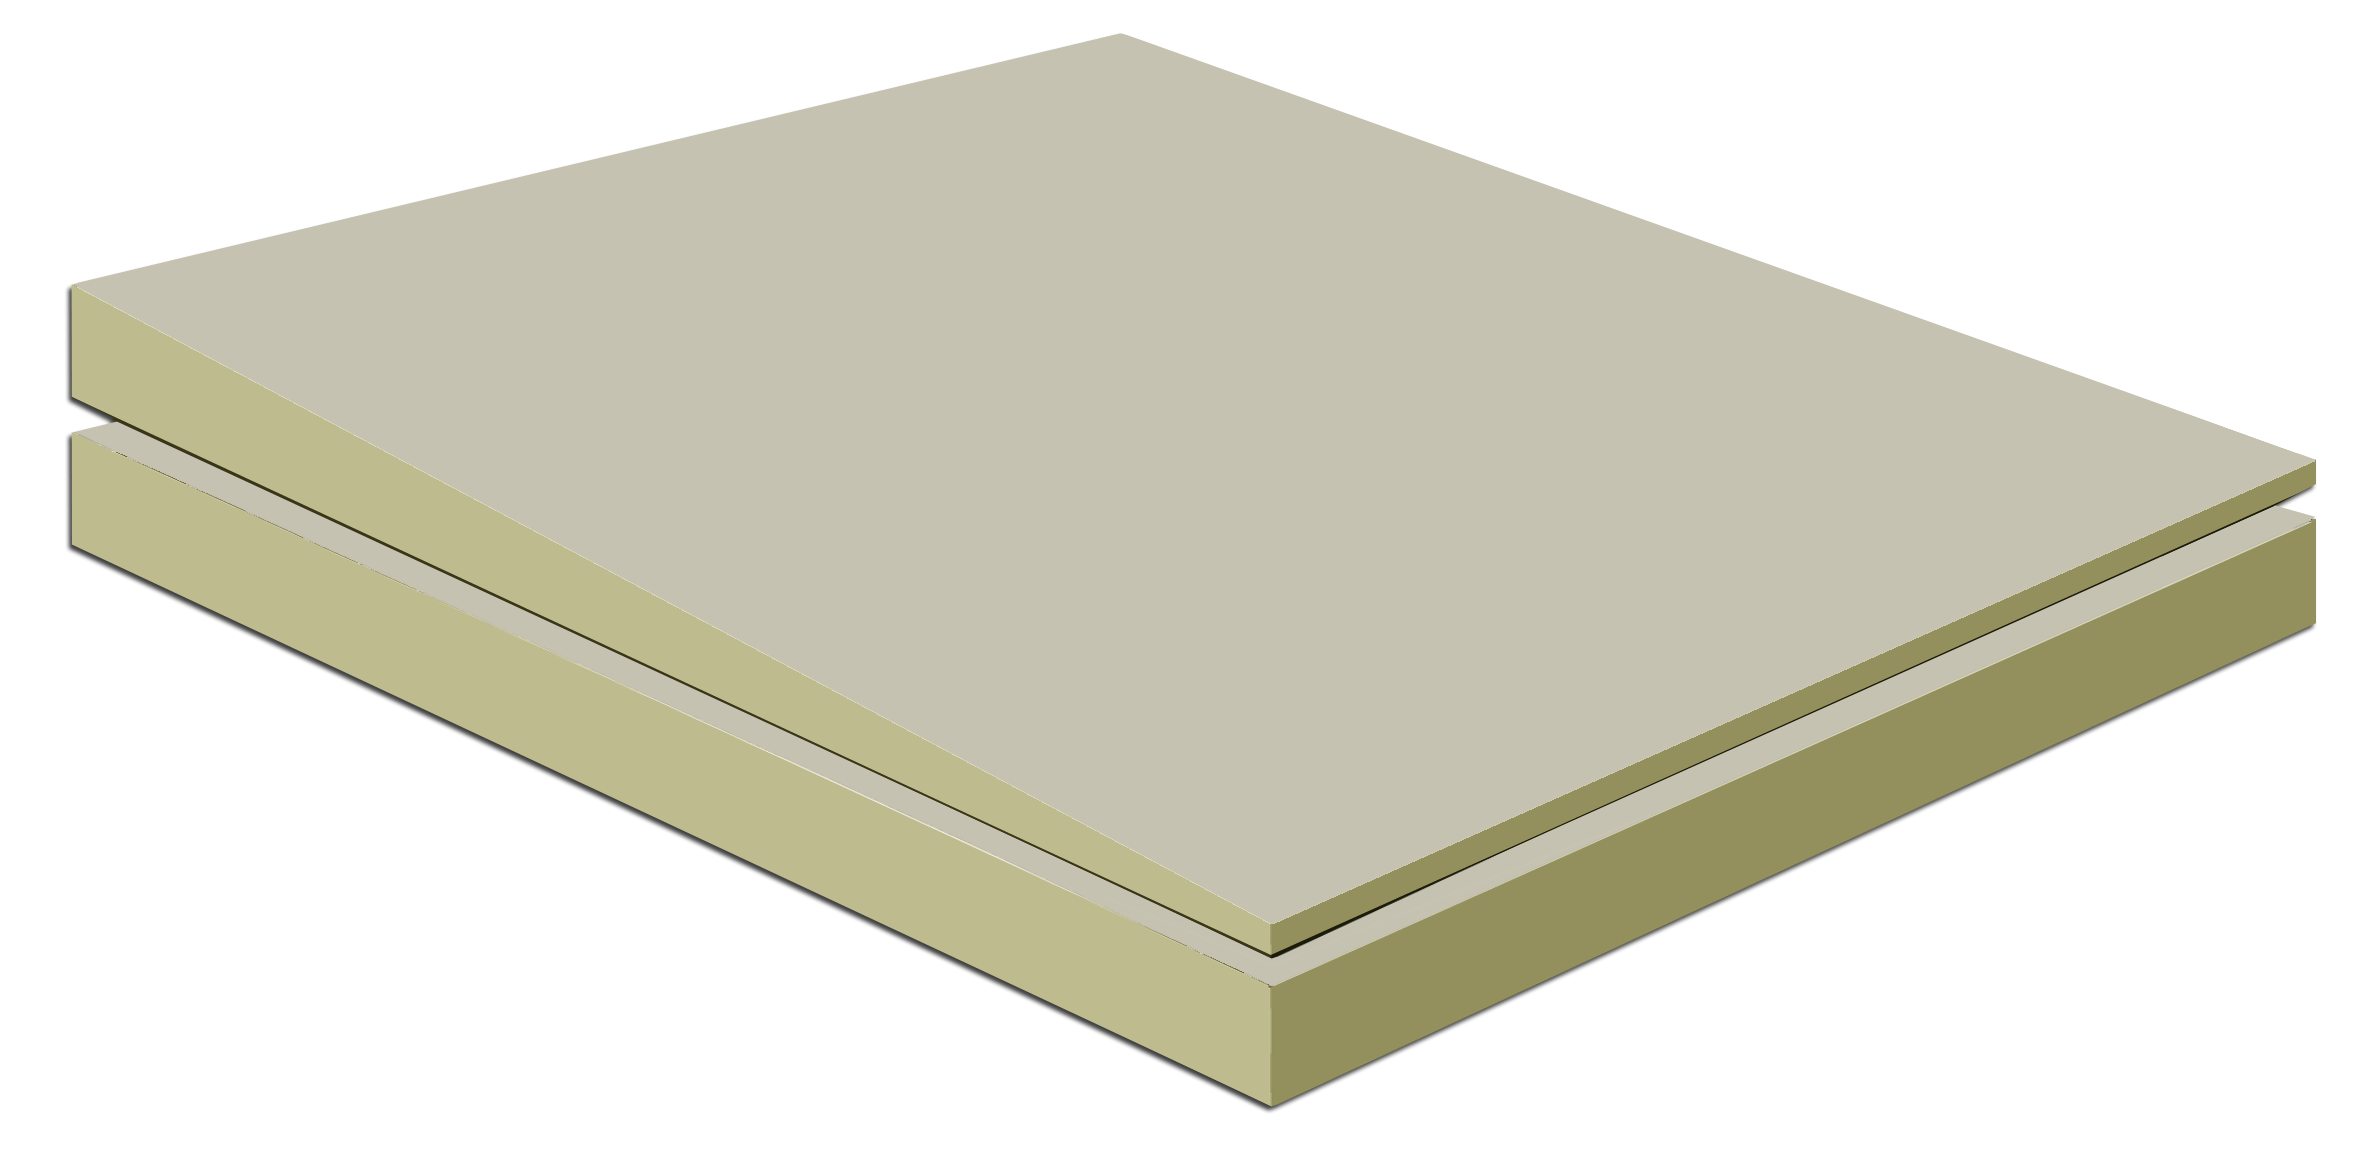 Modulr ts tapered division tapered roofing insulation tapered roof insulation tapered iso - Tapee d isolation ...